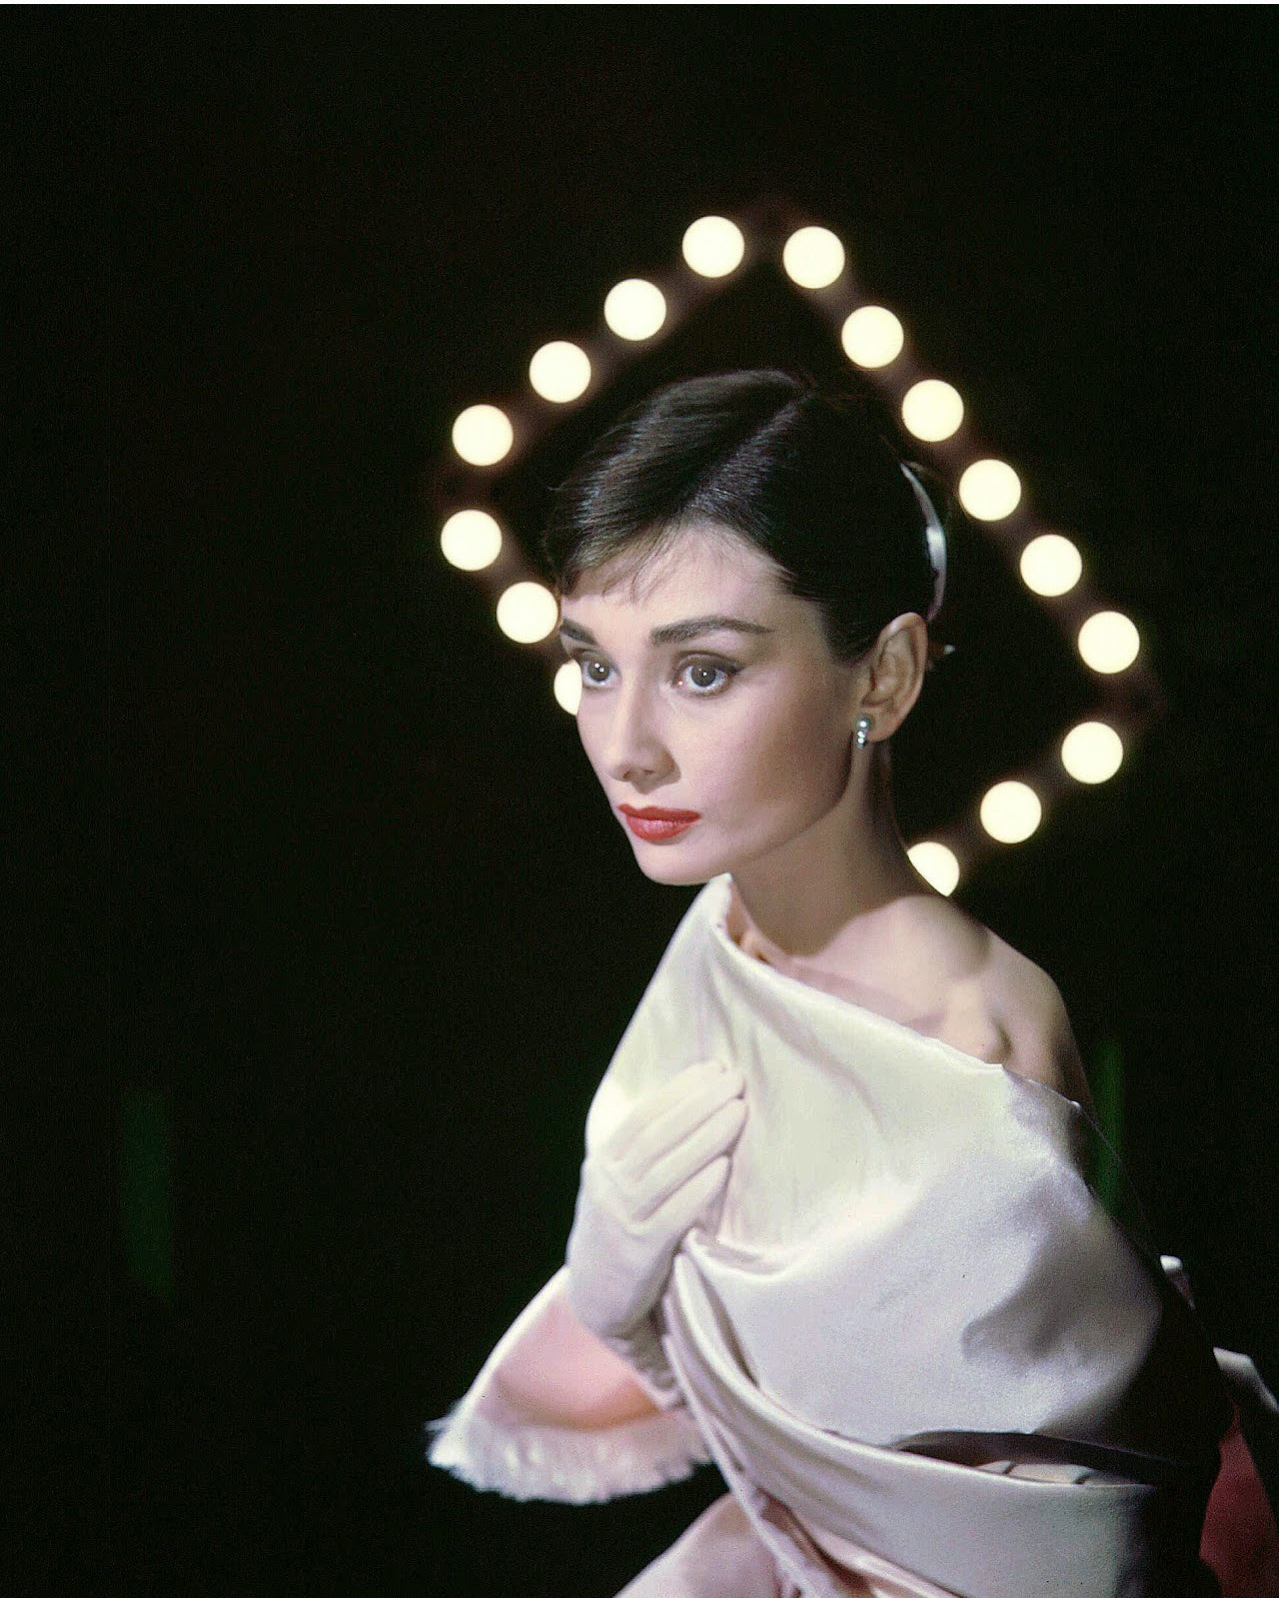 audrey-hepburn-photographed-by-allan-grant-for-life-magazine-in-new-york-usa-on-march-08-1956.jpg